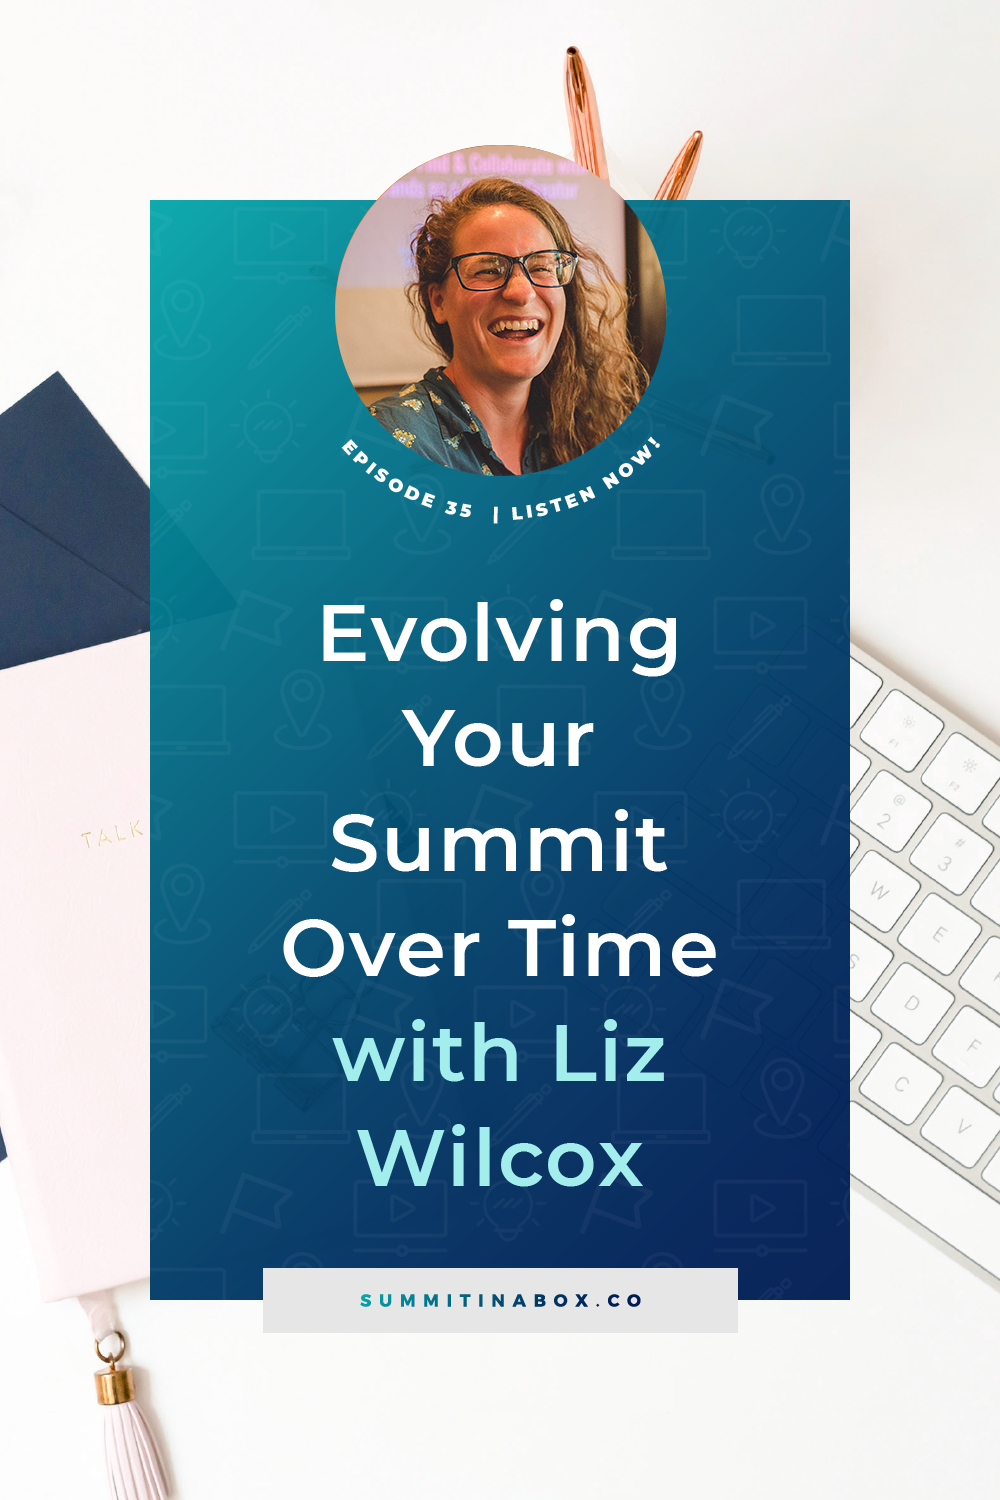 Let's talk about evolving your summit and offer over the years, plus how to help an audience not familiar with virtual summits understand how it all works.